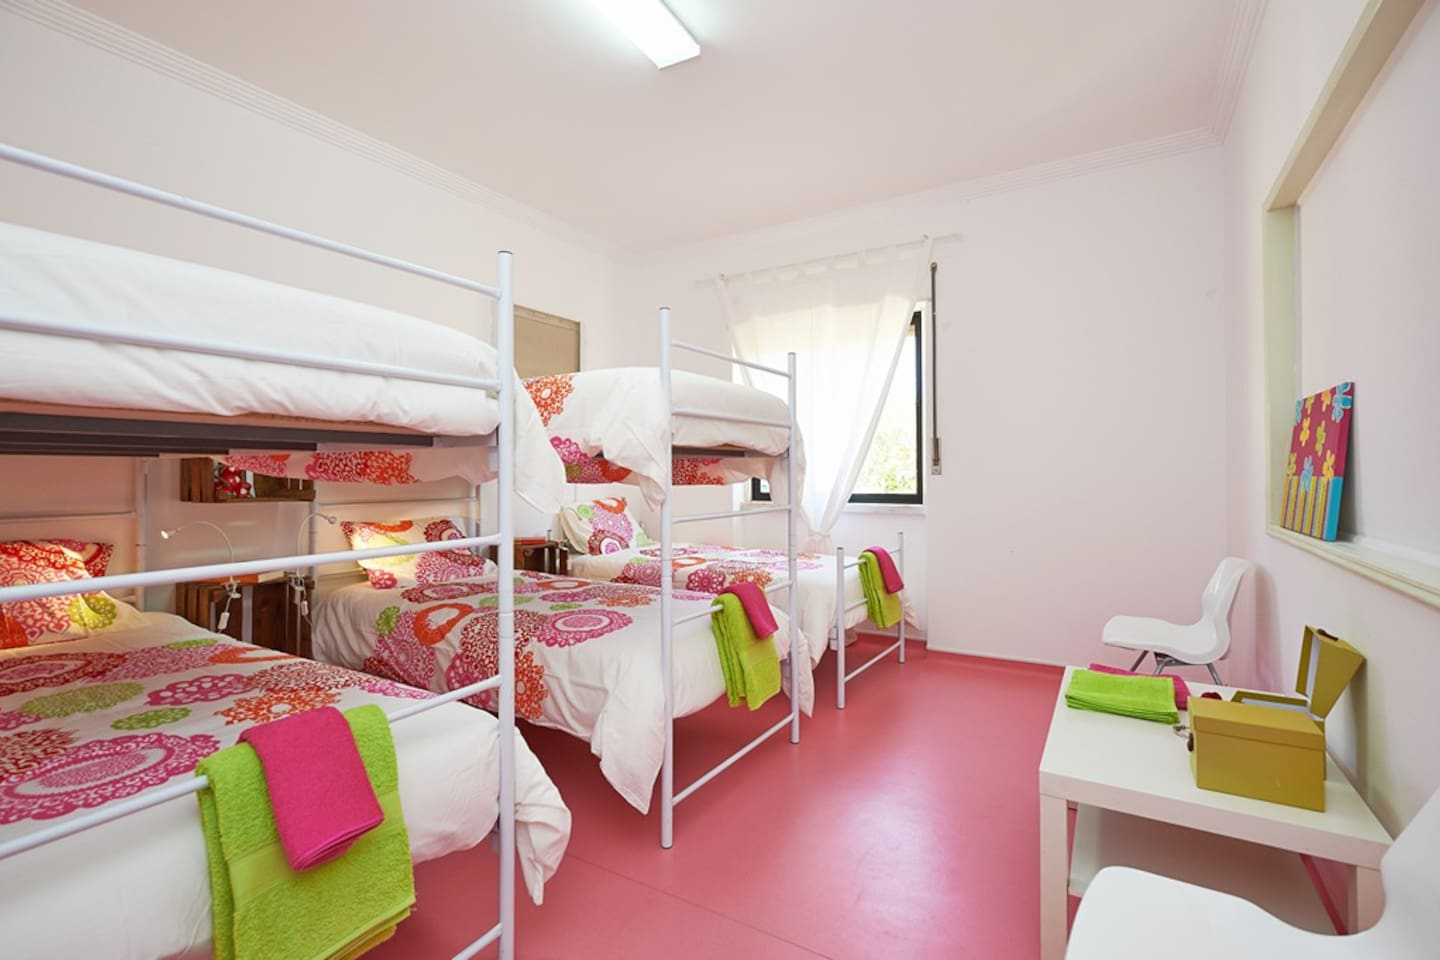 Community girl room